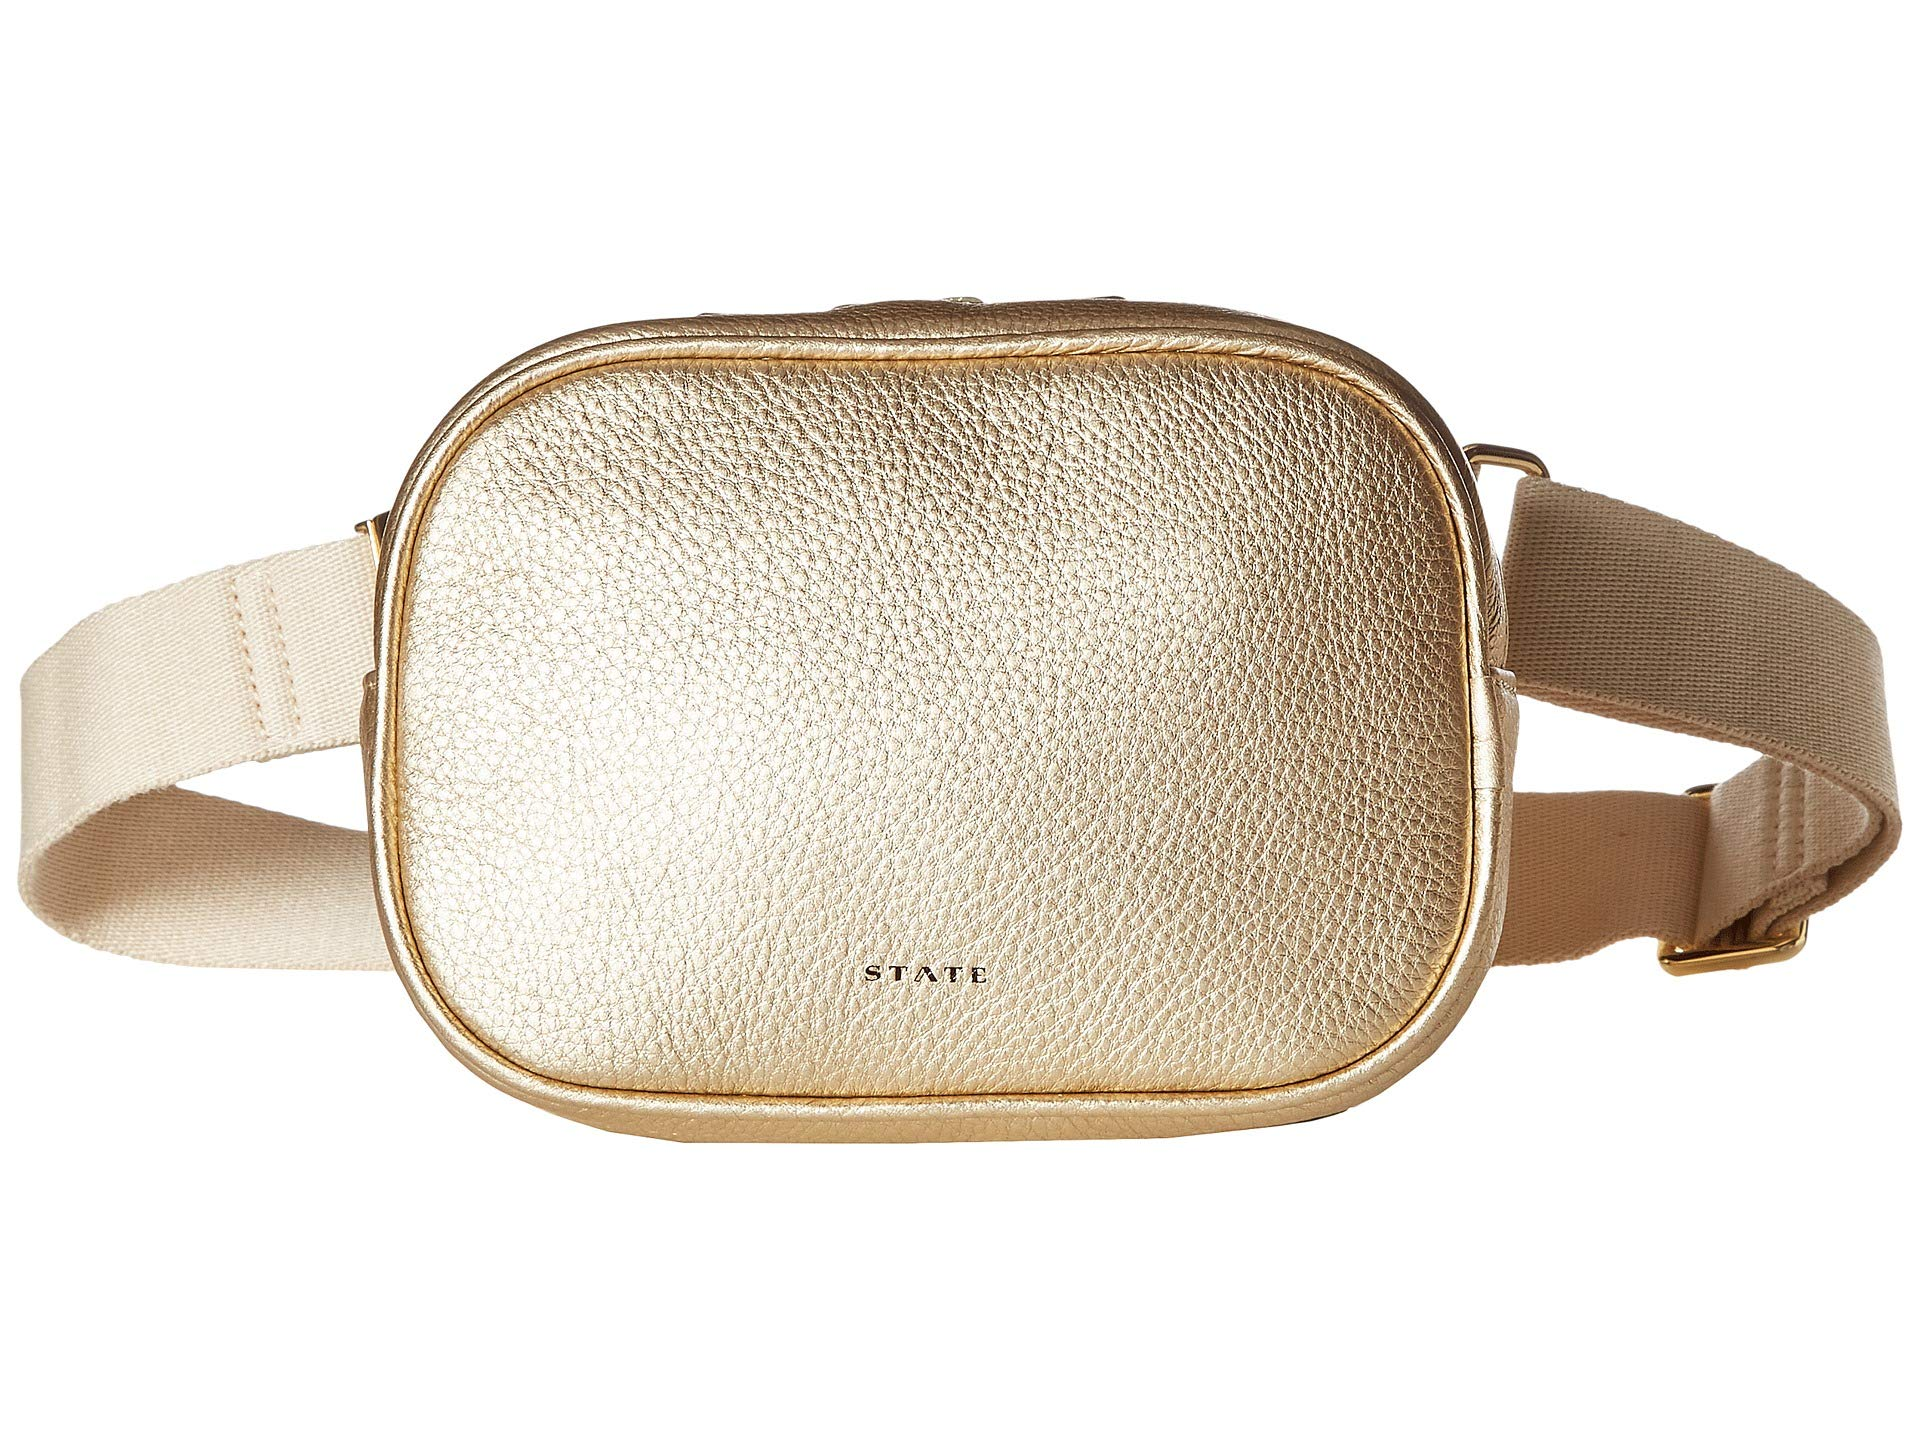 STATE Bags Women's Crosby Fanny Pack Gold One Size